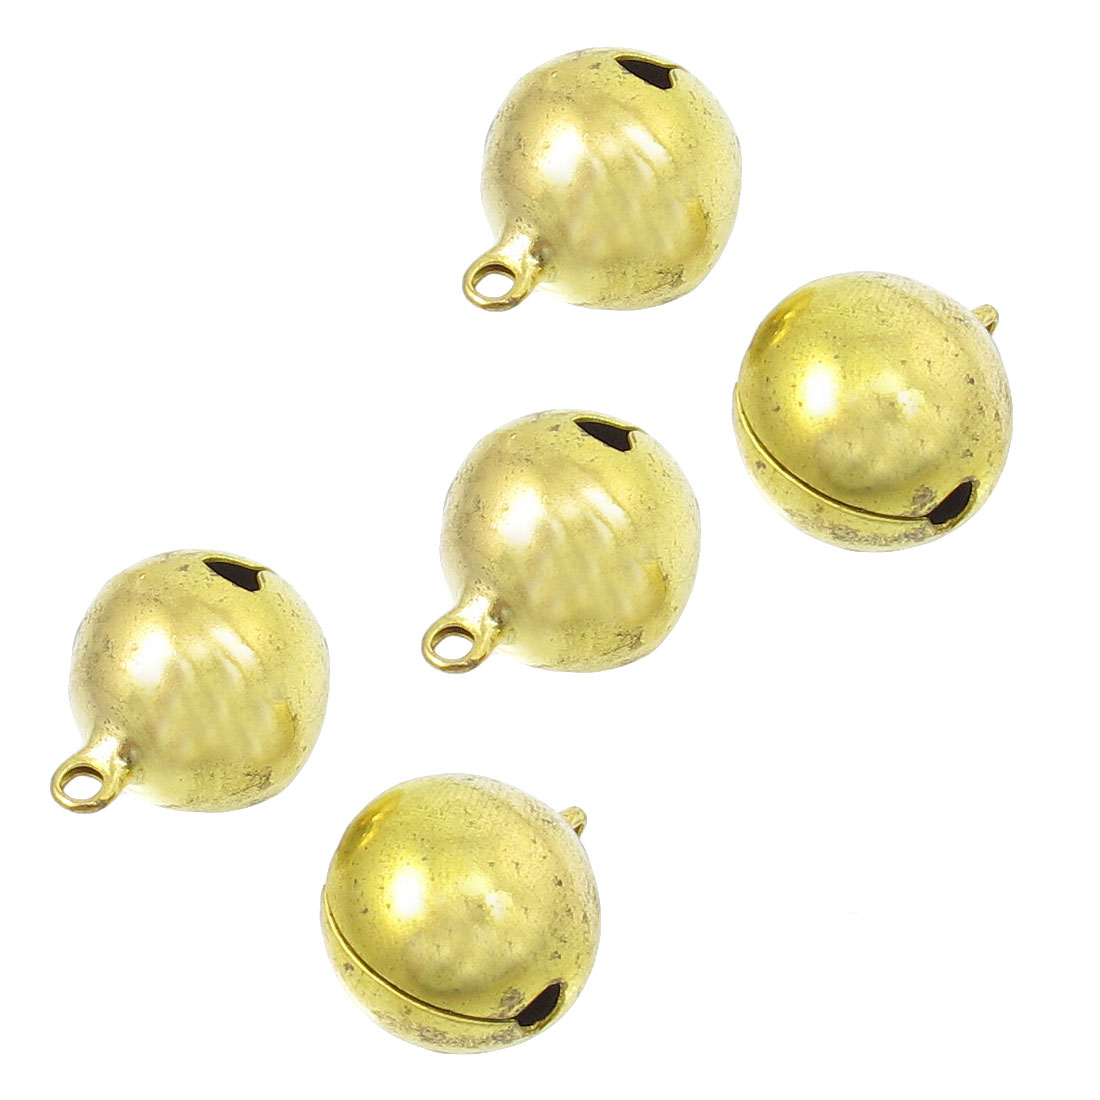 5 Pcs Gold Tone Christmas Tree Party Ornament 20mm Metal Ring Bells